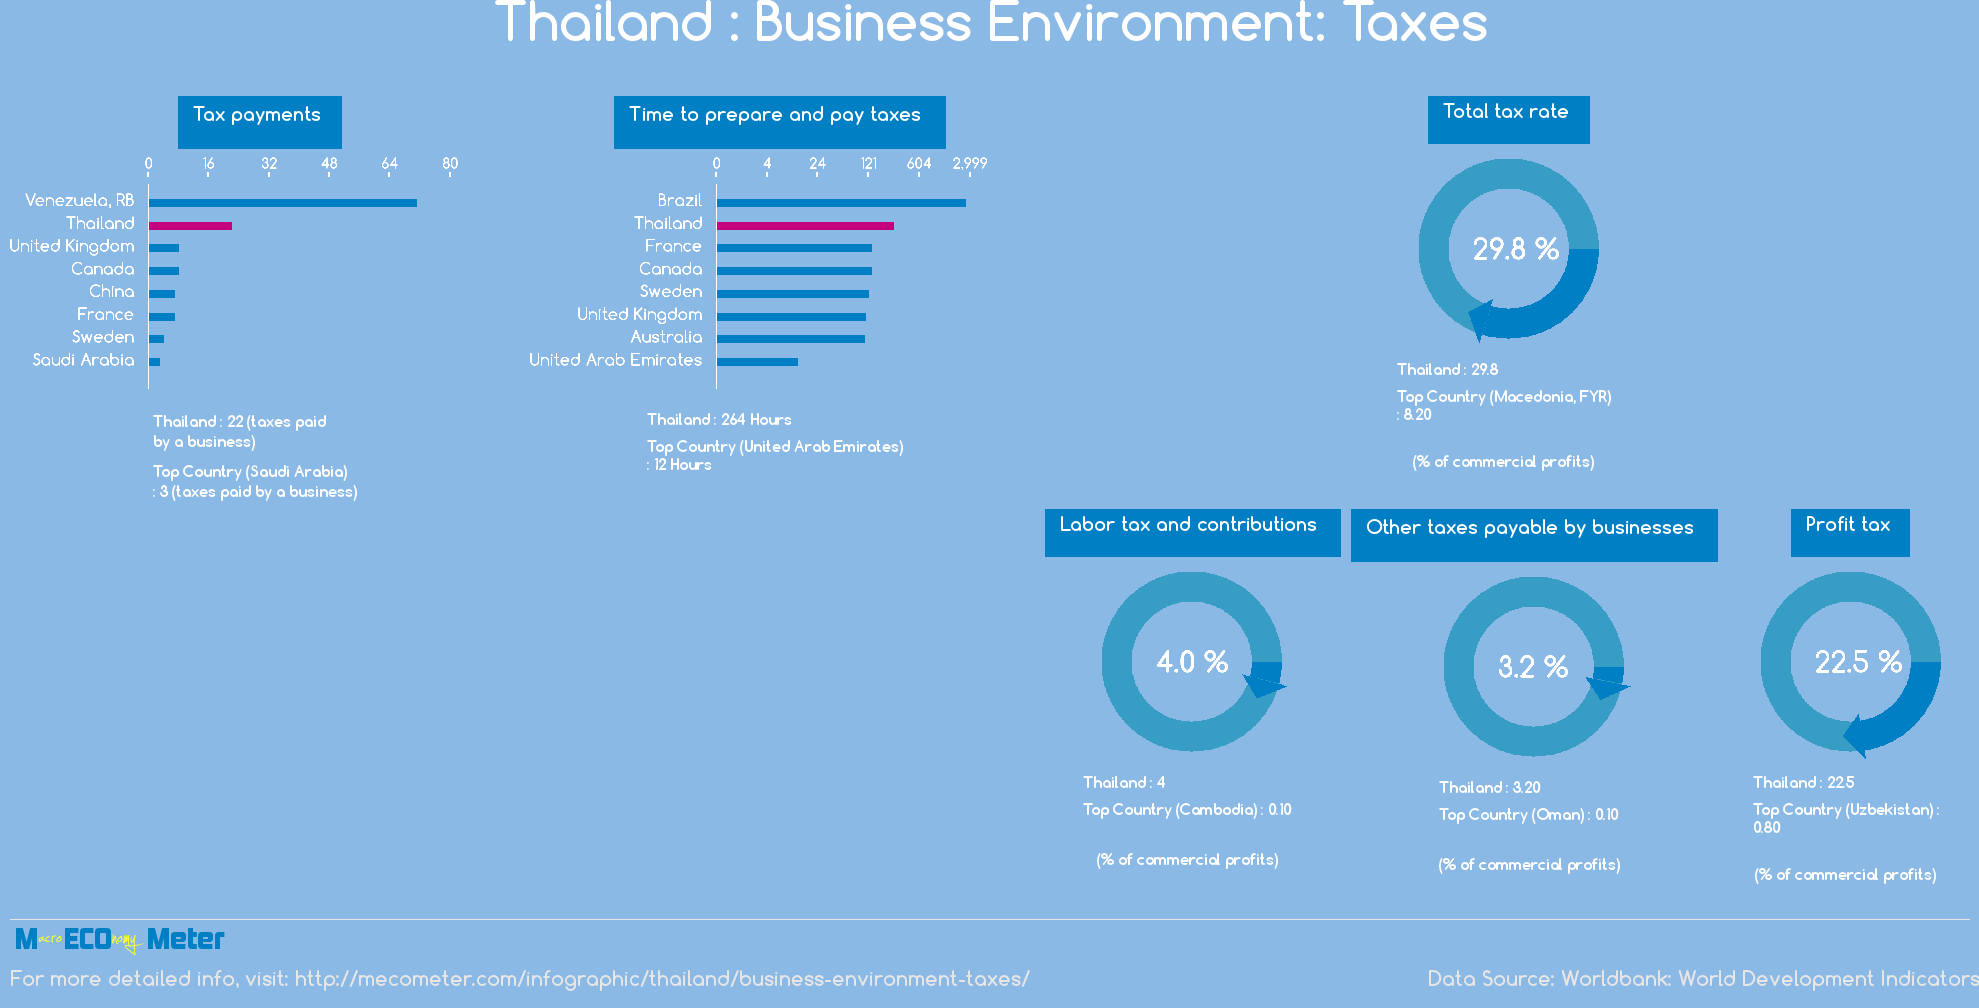 Thailand : Business Environment: Taxes